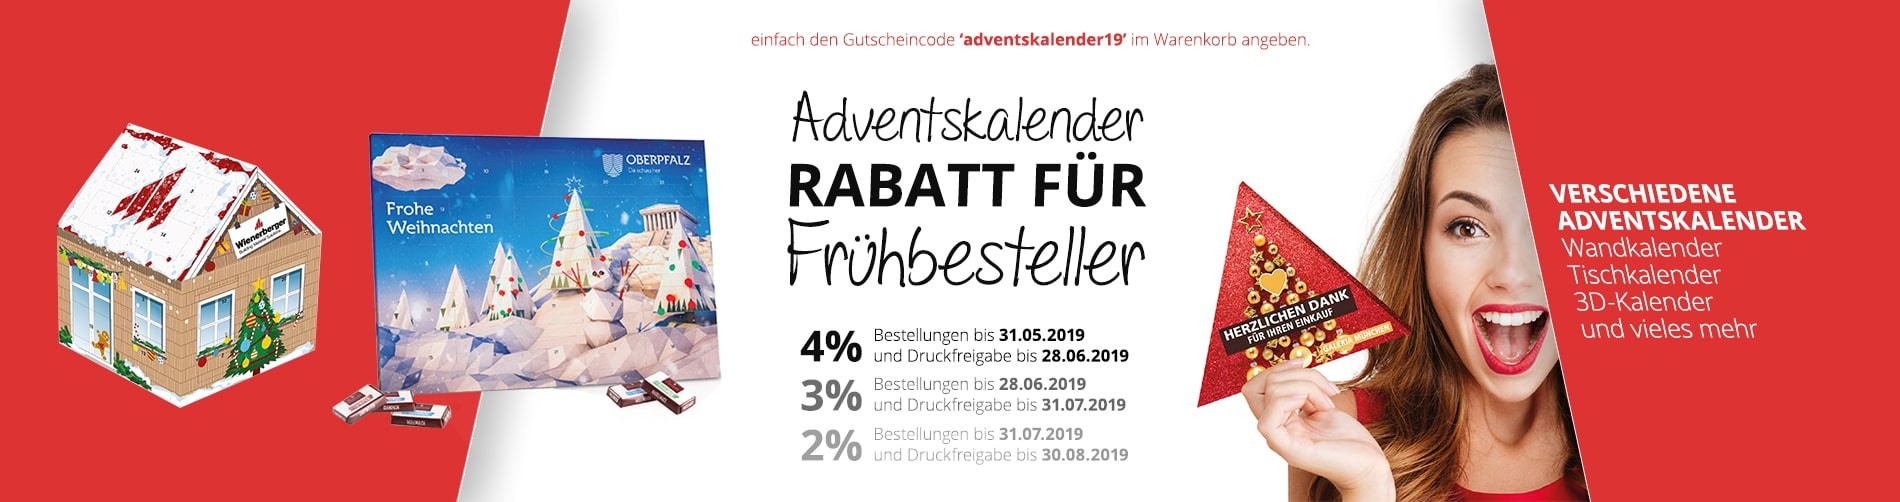 Adventskalender Rabatt